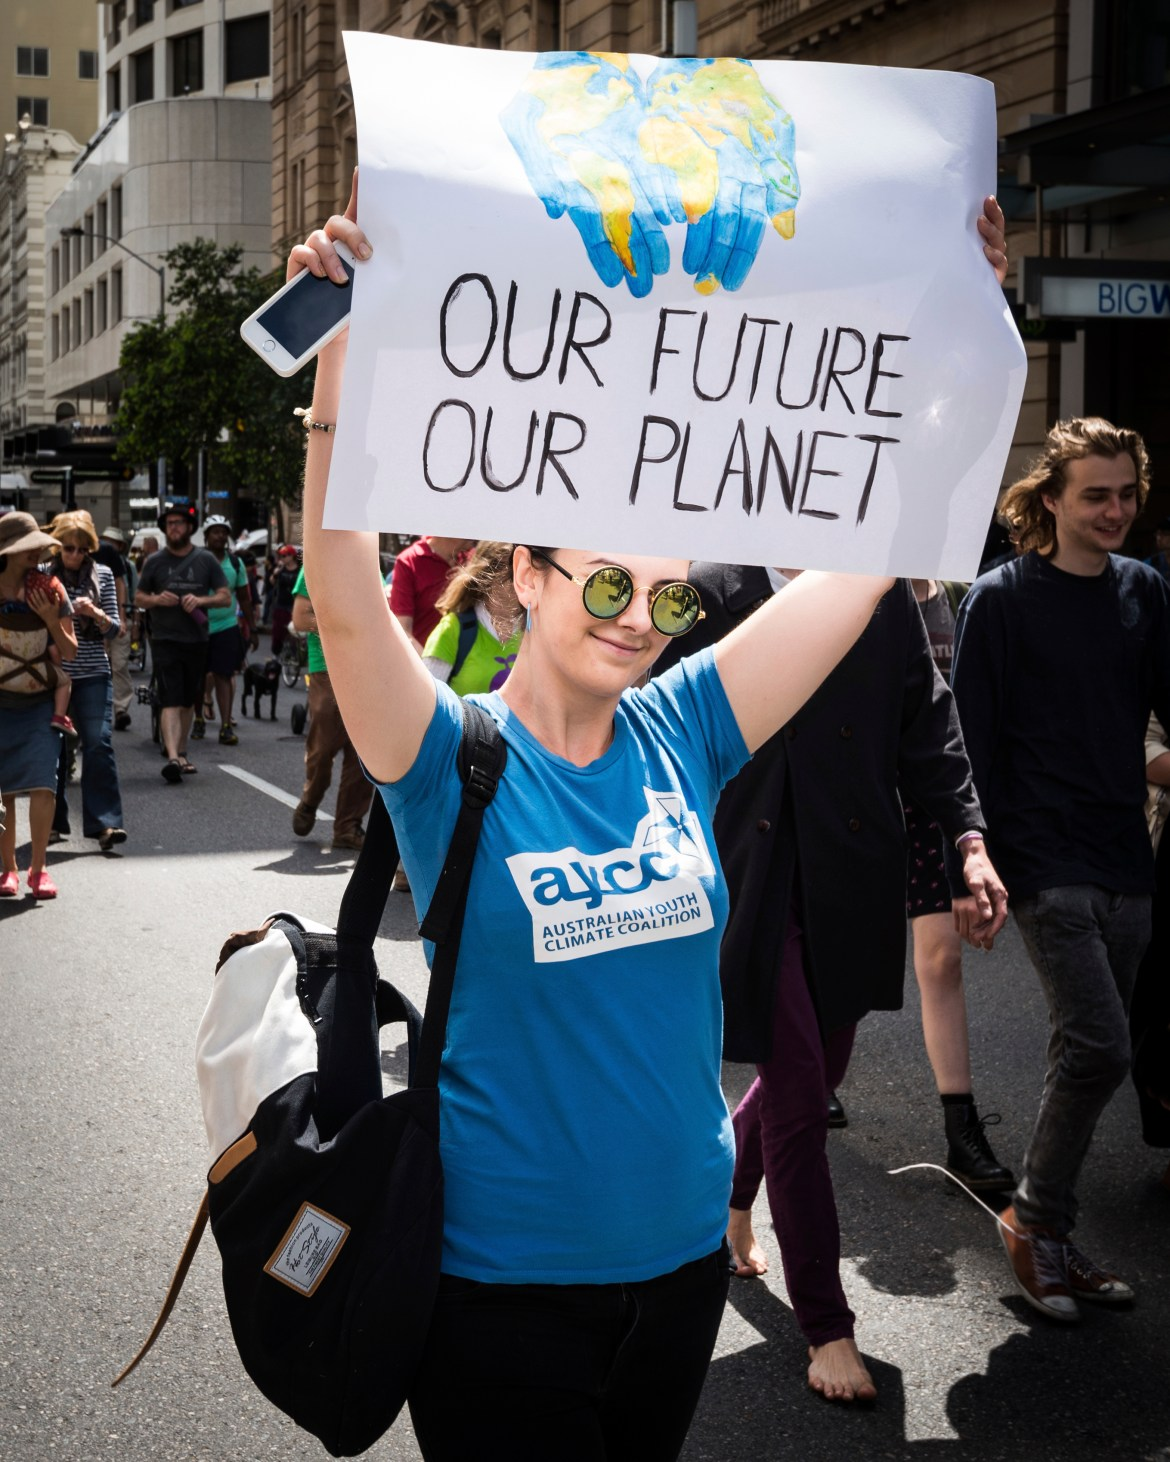 Our Future, Our Planet